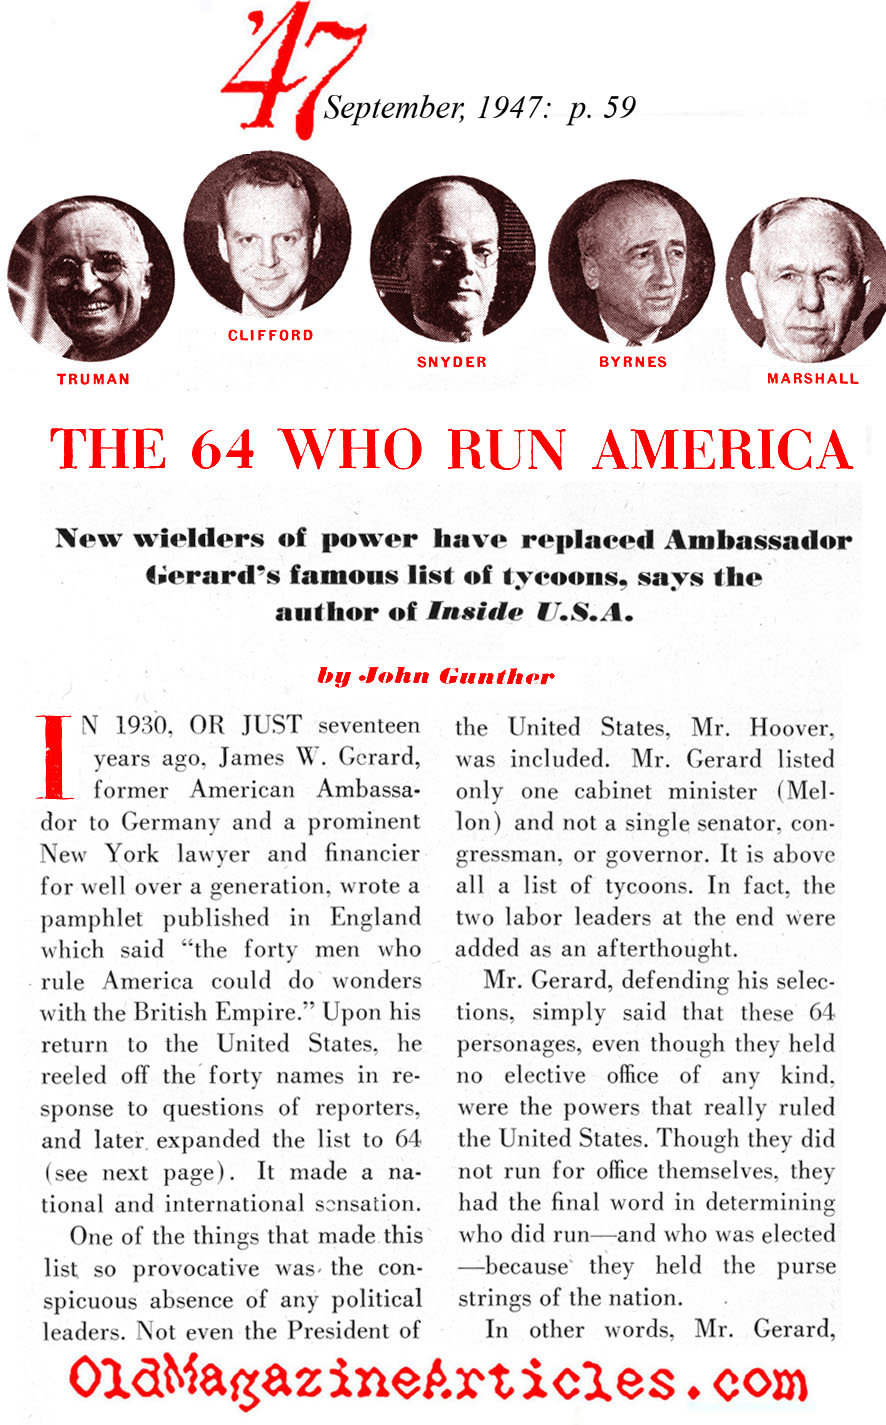 The Most Powerfull Men in Cold War Washington ('47 Magazine)